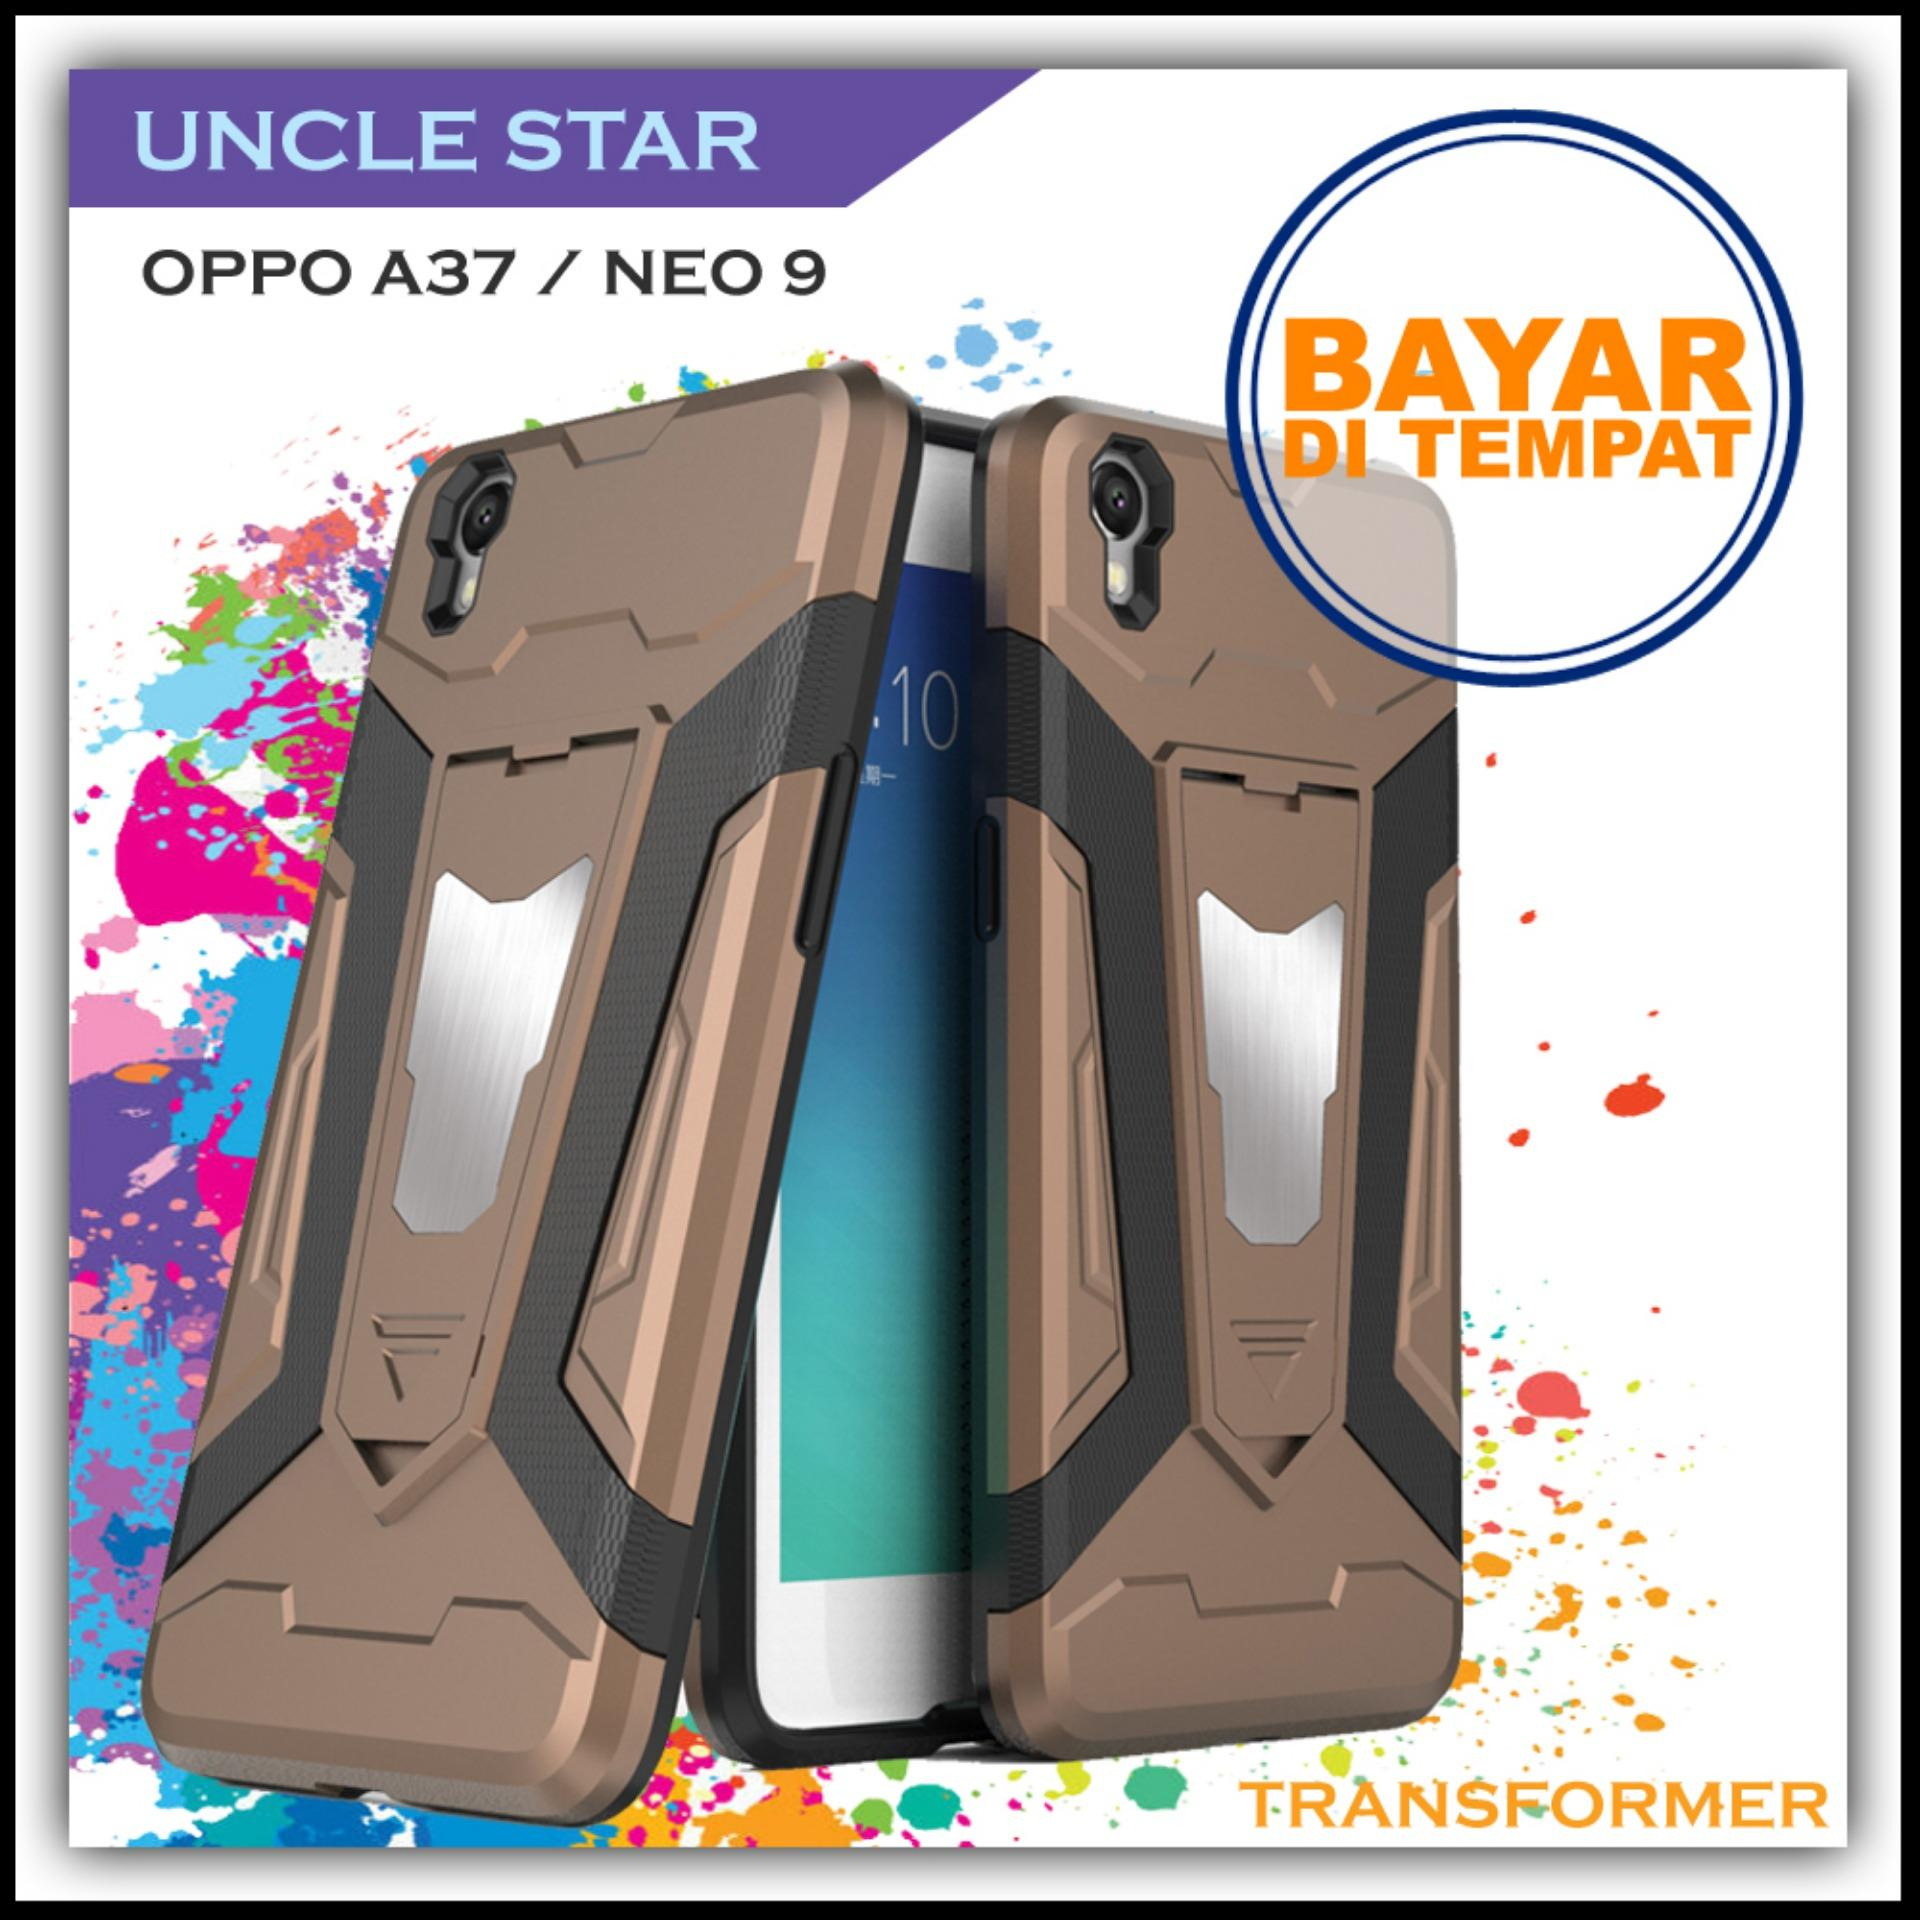 Buy Sell Cheapest La A9 Best Quality Product Deals Indonesian Store Charger Casan Oppo F1s F3 F5 F7 A37 A33 Neo 7 9 F1 2a Ak933 Original Uncle Star Hardcase For Pro Robot Transformer Ironman Limited